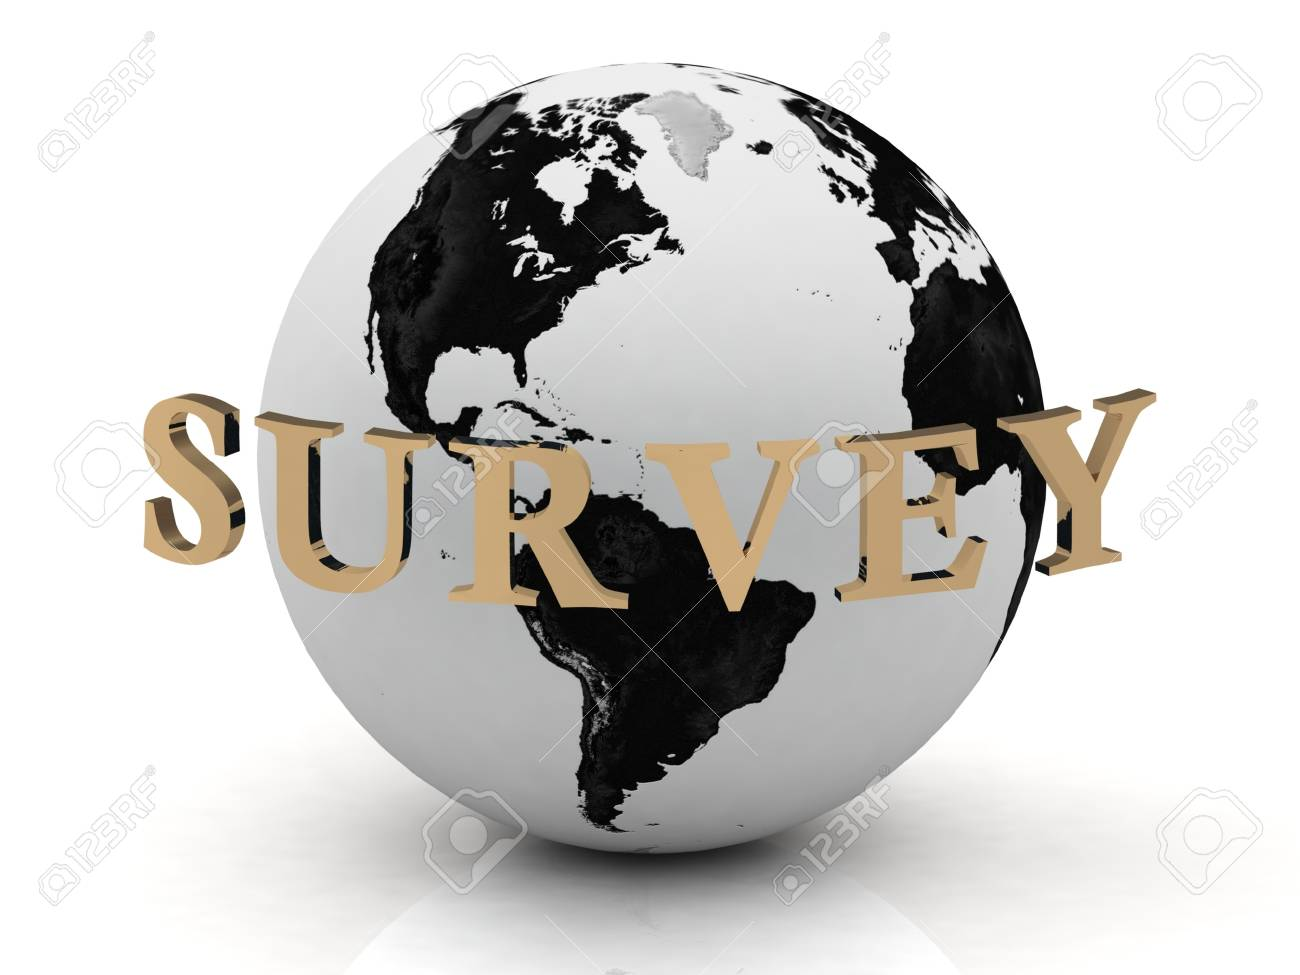 SURVEY abstraction inscription around earth on a white background Stock Photo - 14618983